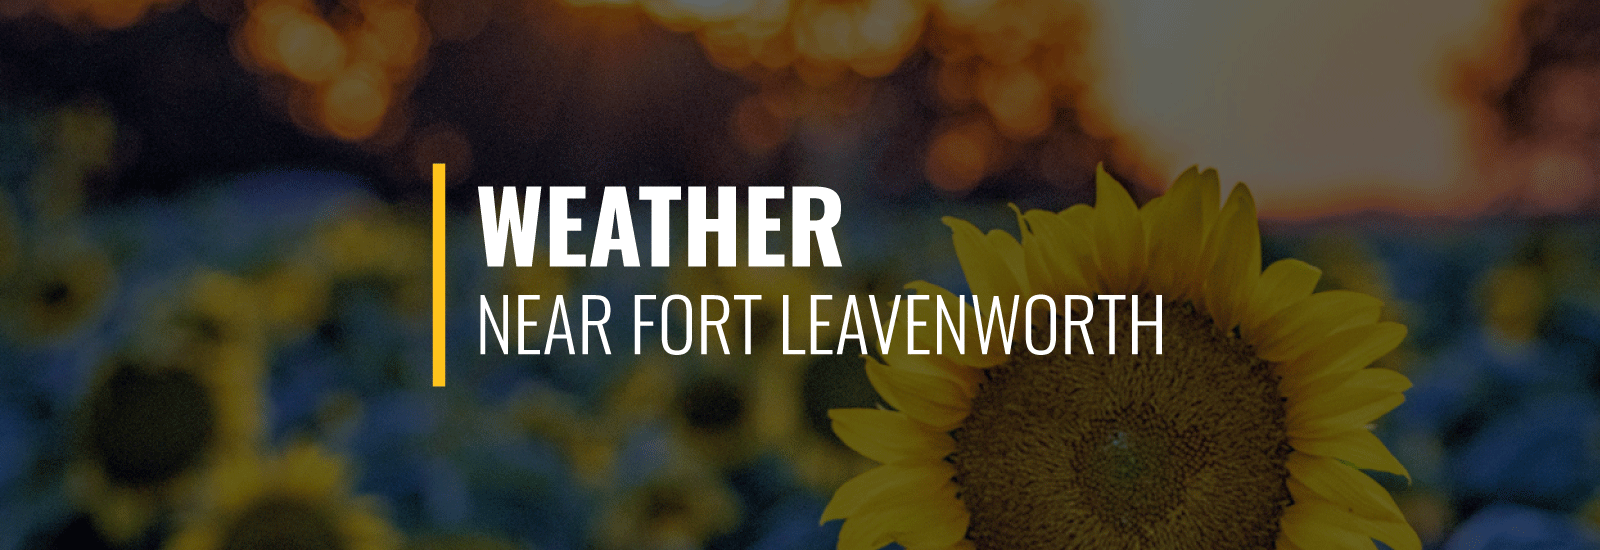 Fort Leavenworth Weather